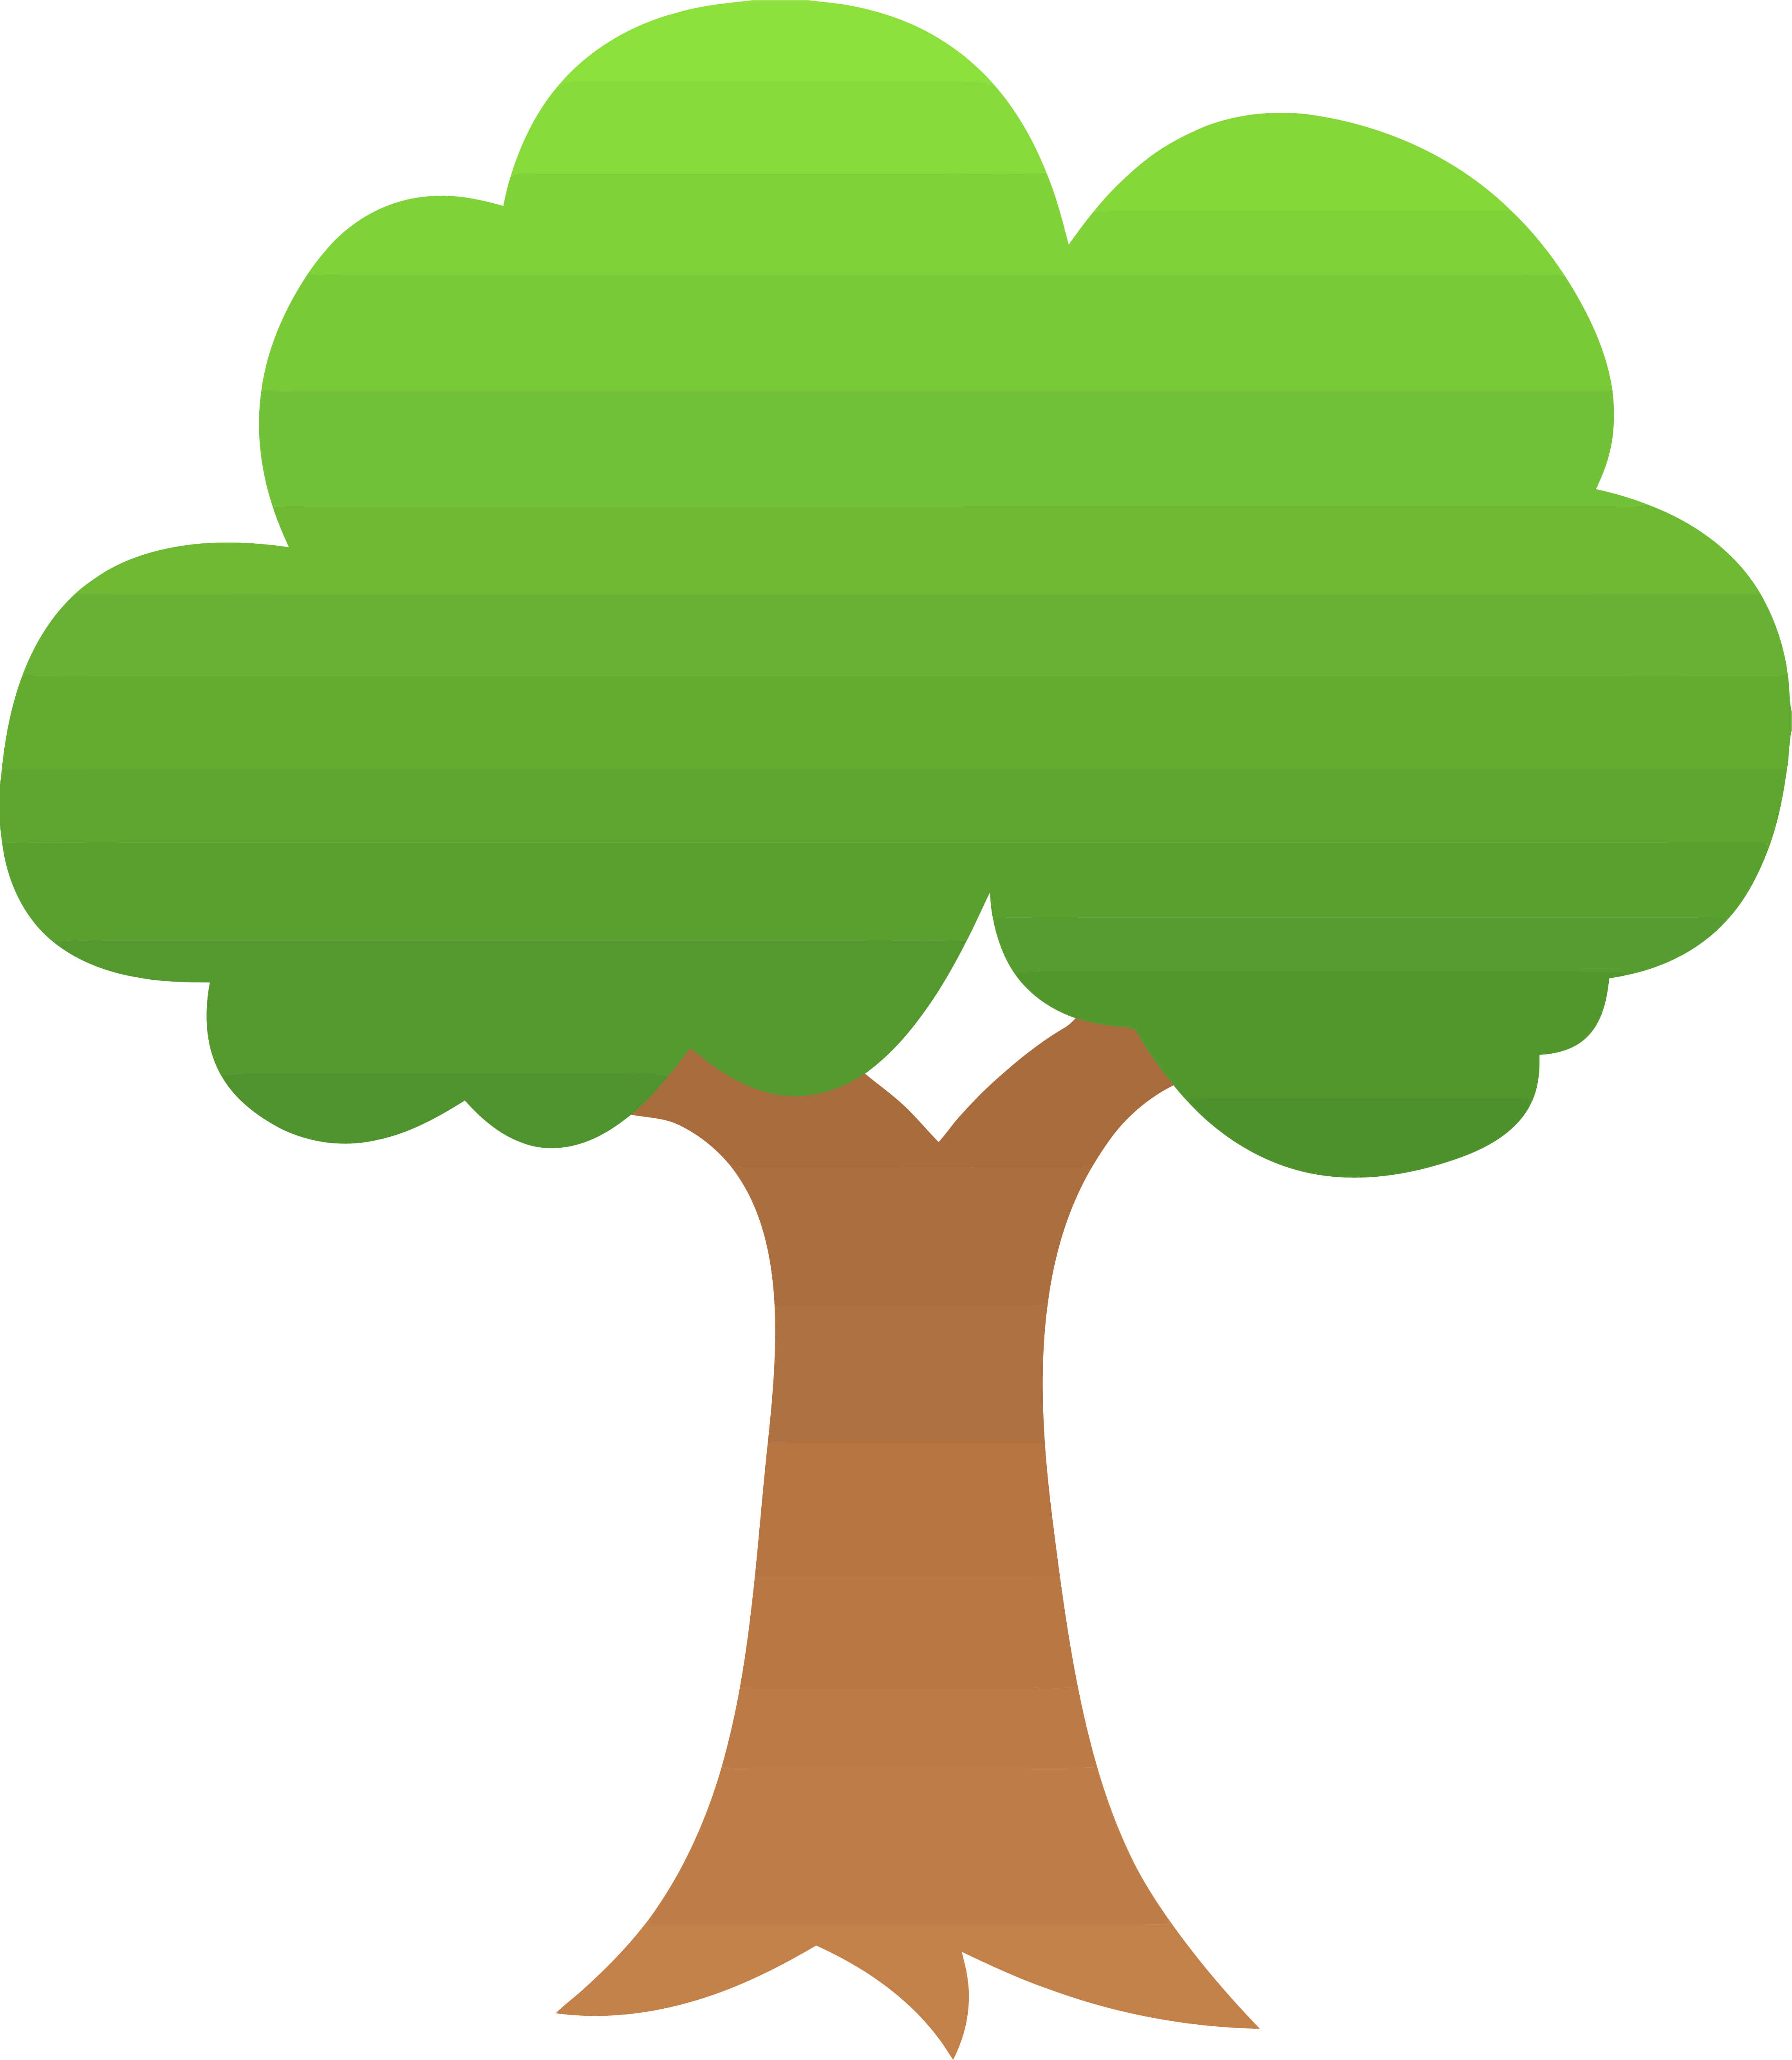 Gradient apple tree png. Clipart trees truck